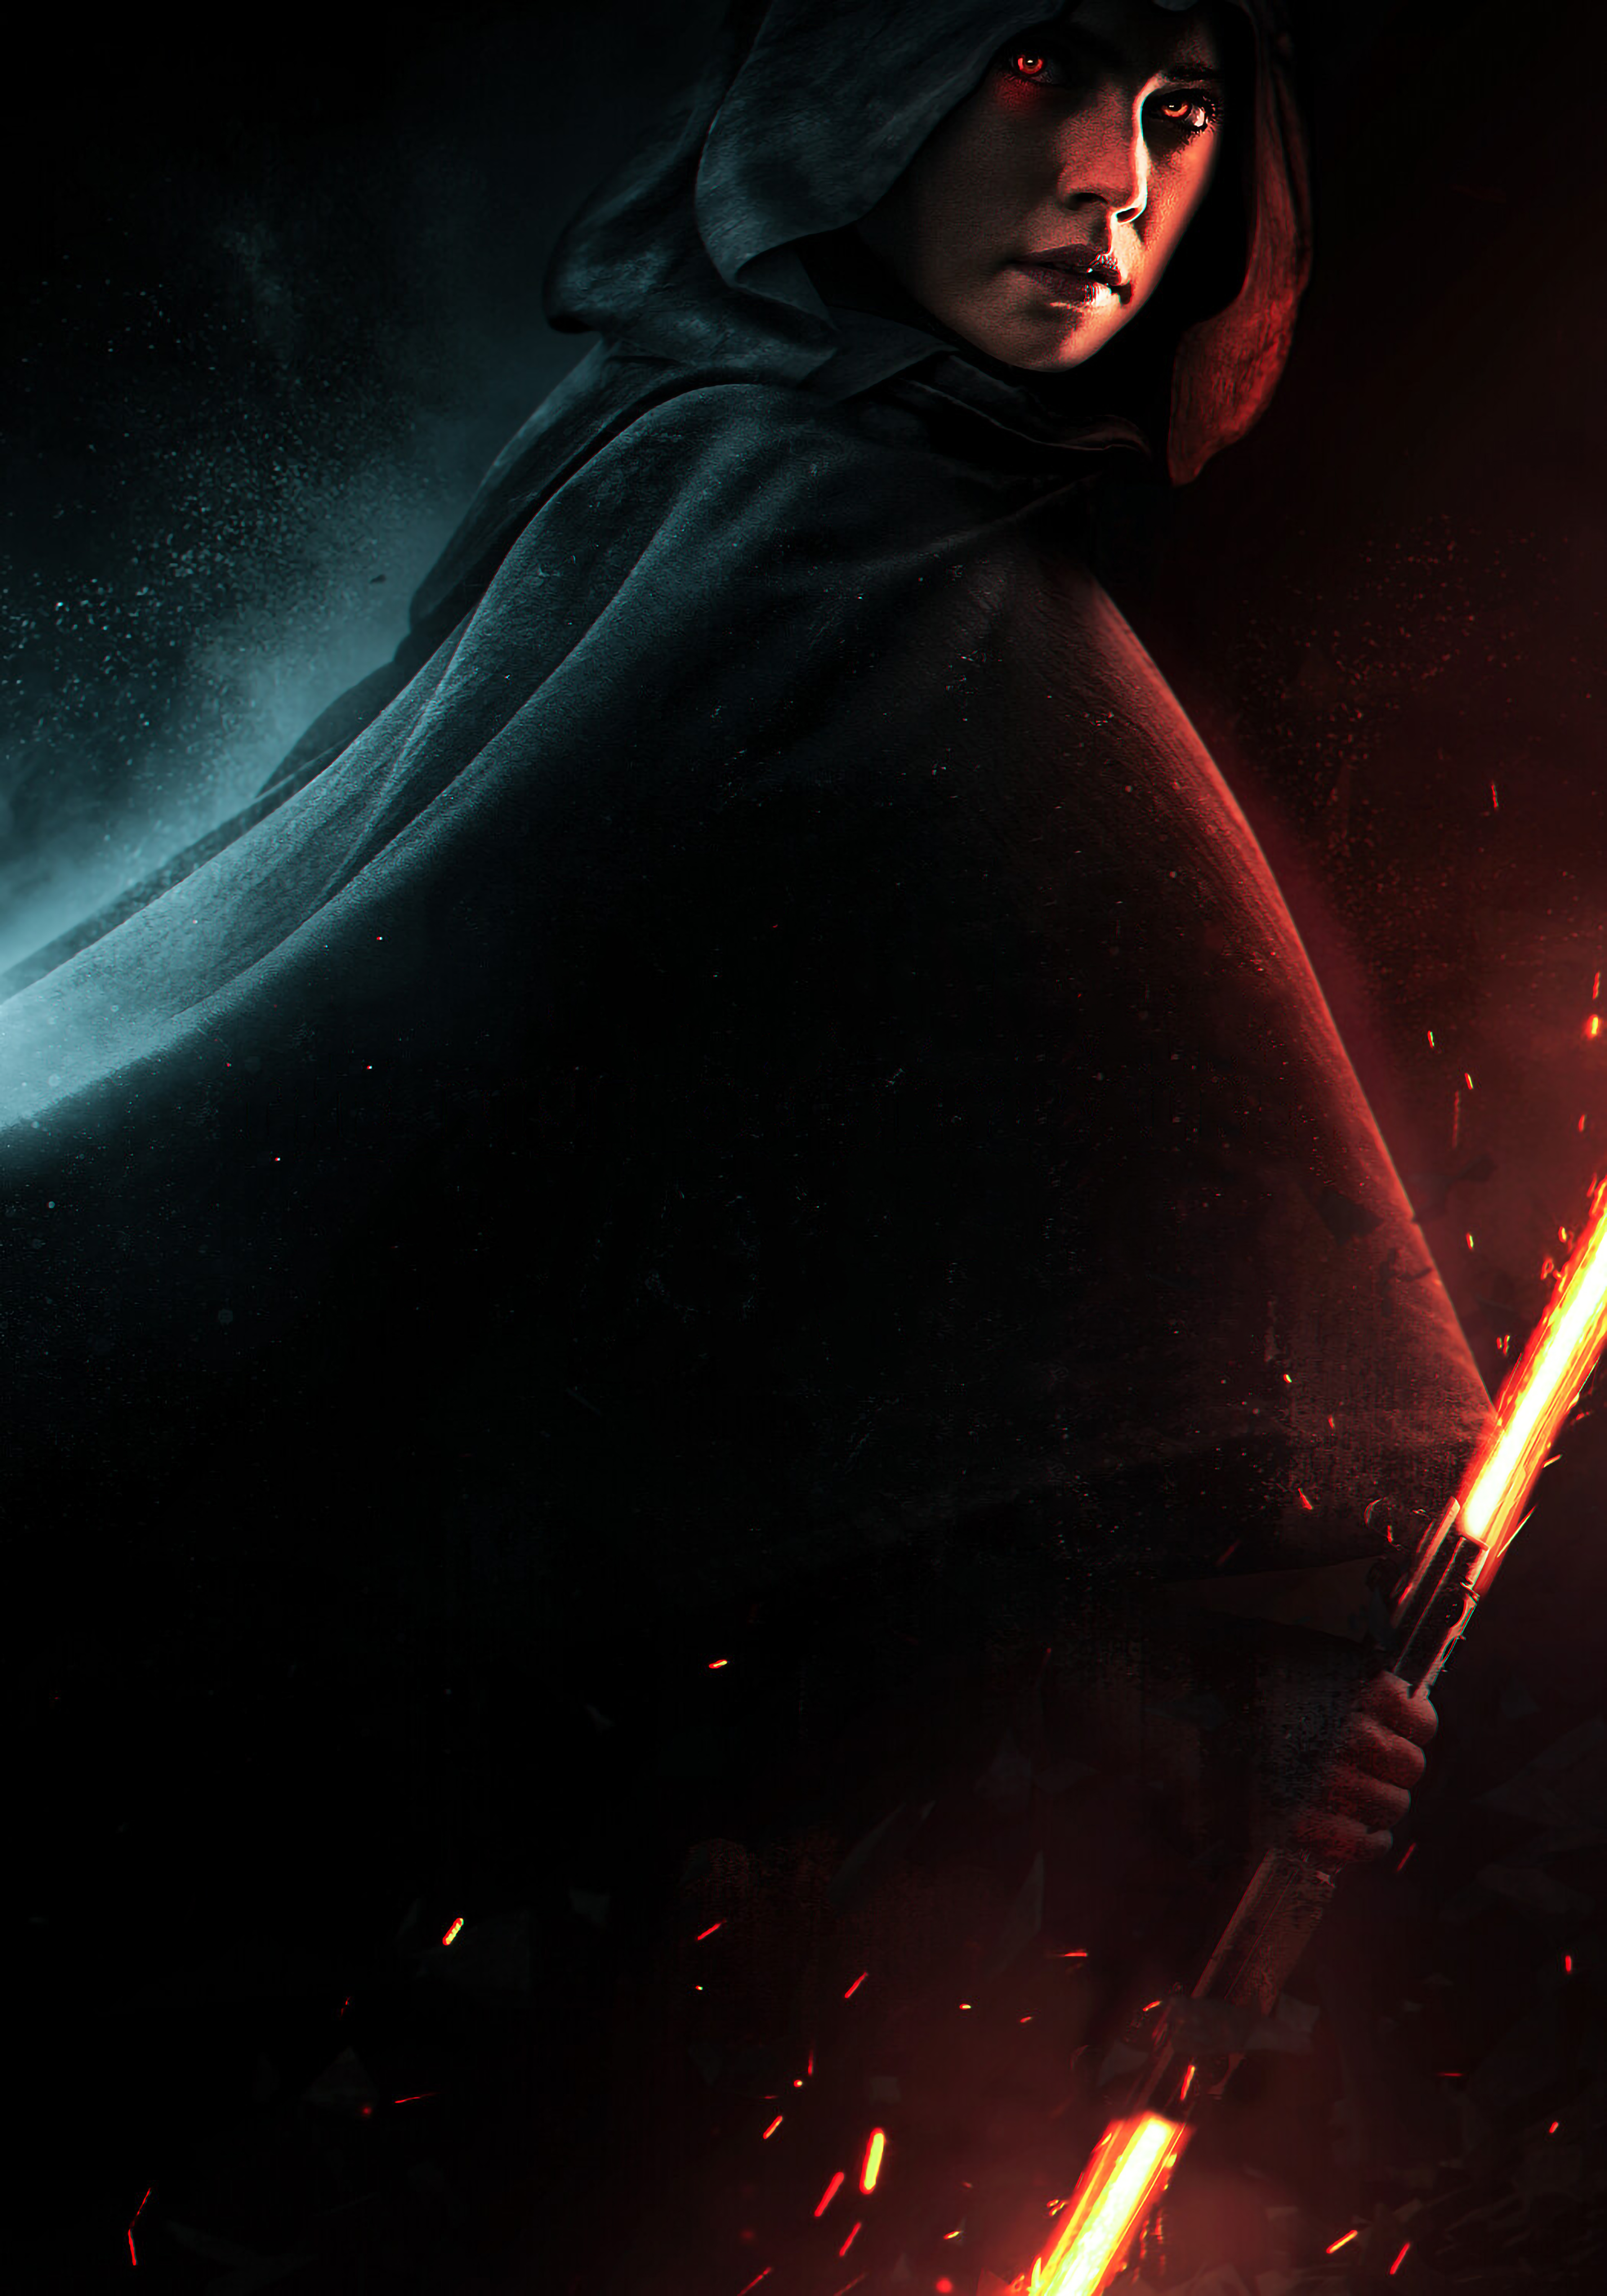 Sith Rey Wallpaper Hd Movies 4k Wallpapers Images Photos